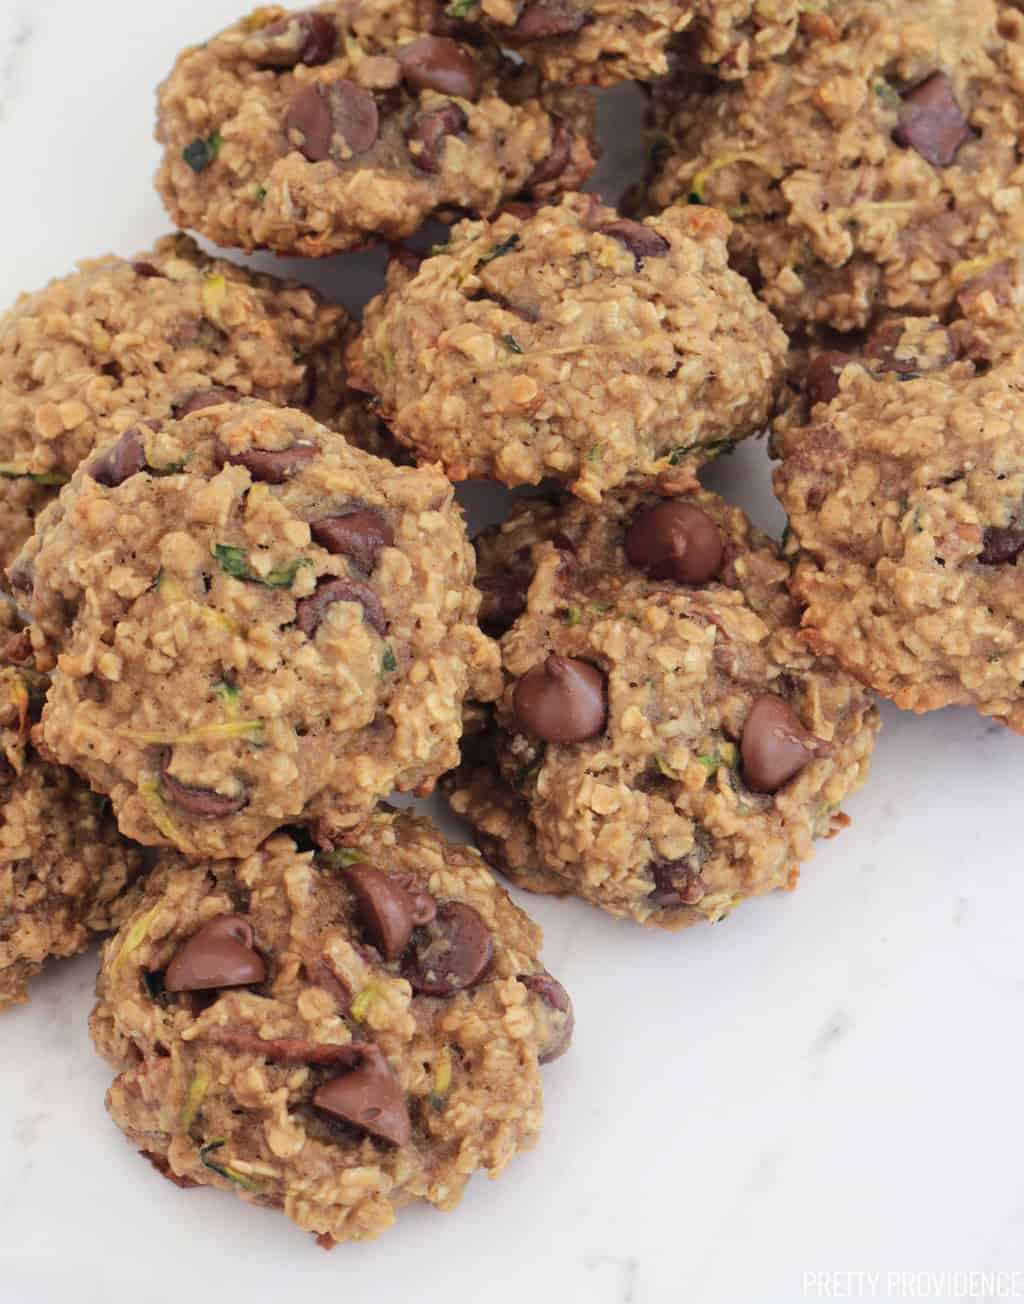 Zucchini breakfast cookies with oatmeal and chocolate chips on a white marble surface.